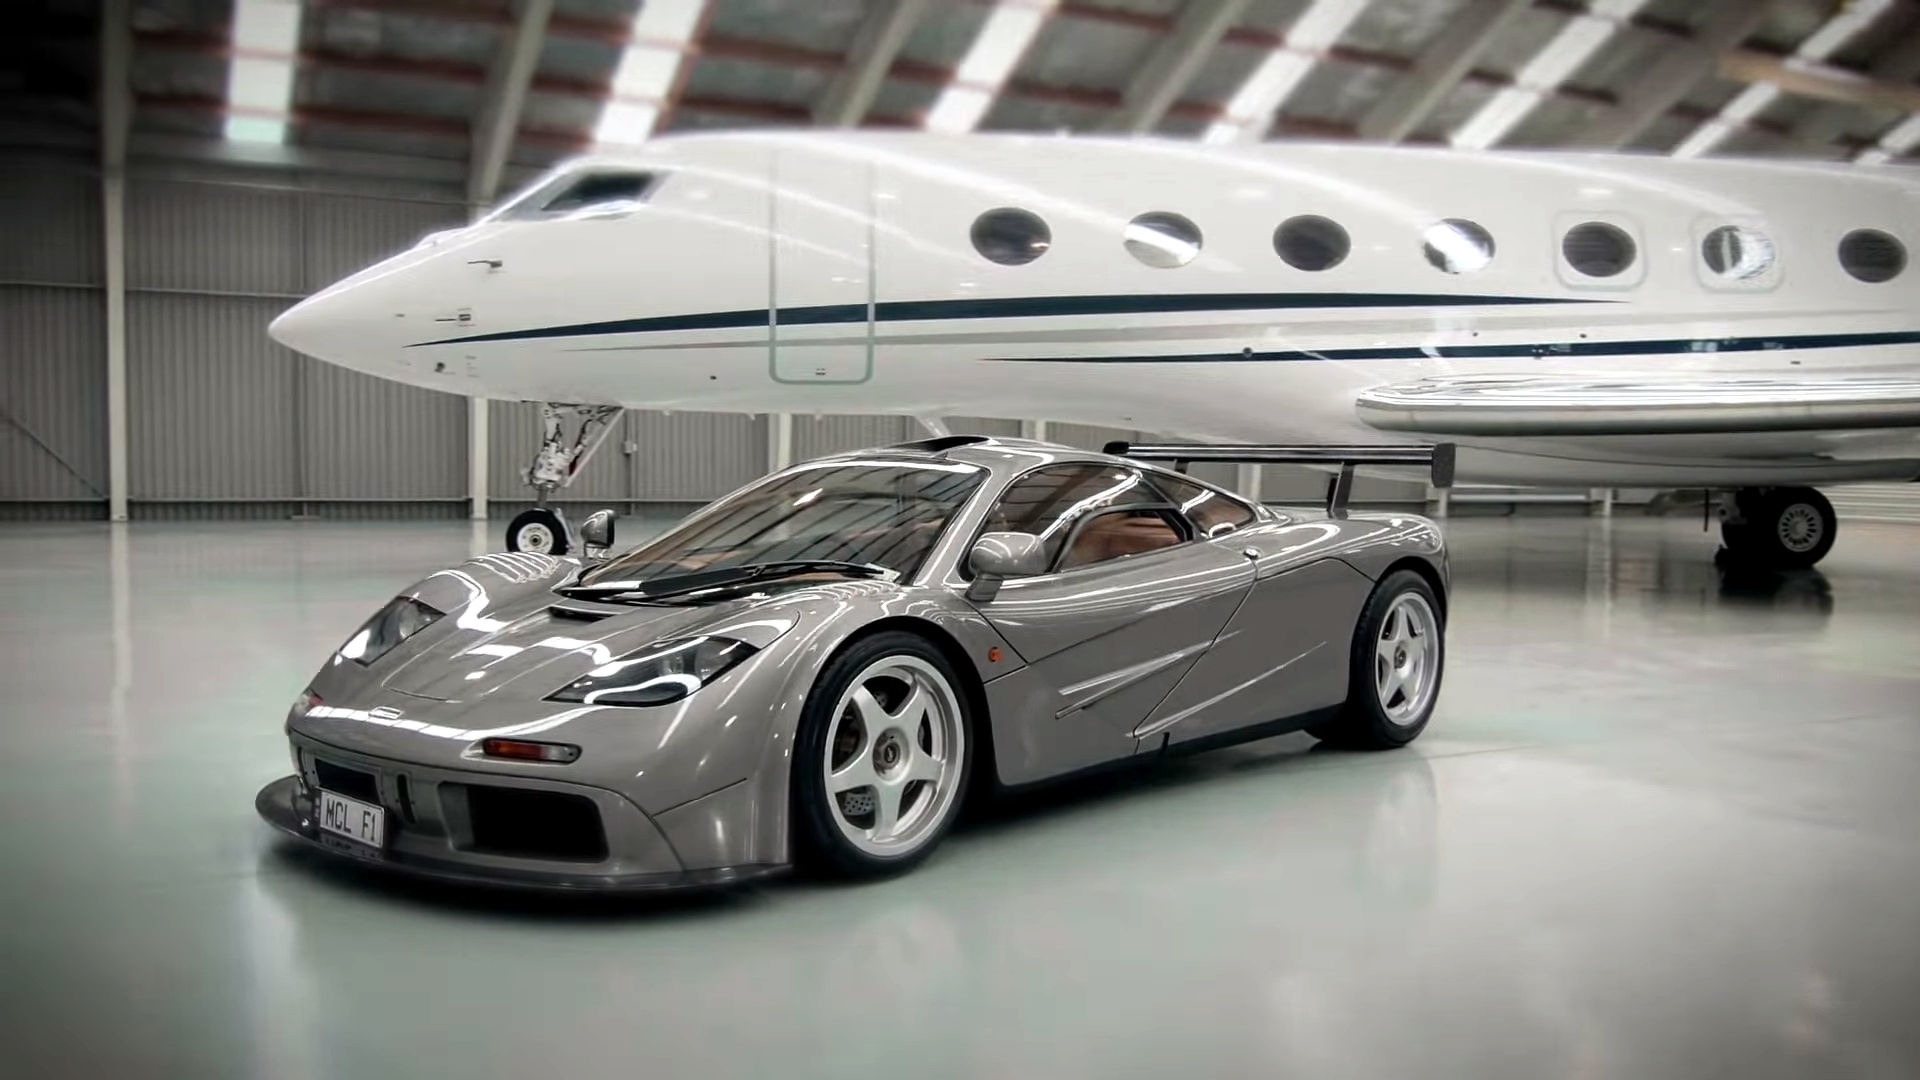 Learn About Ultra Rare Mclaren F1 Hdf With Racing Specs